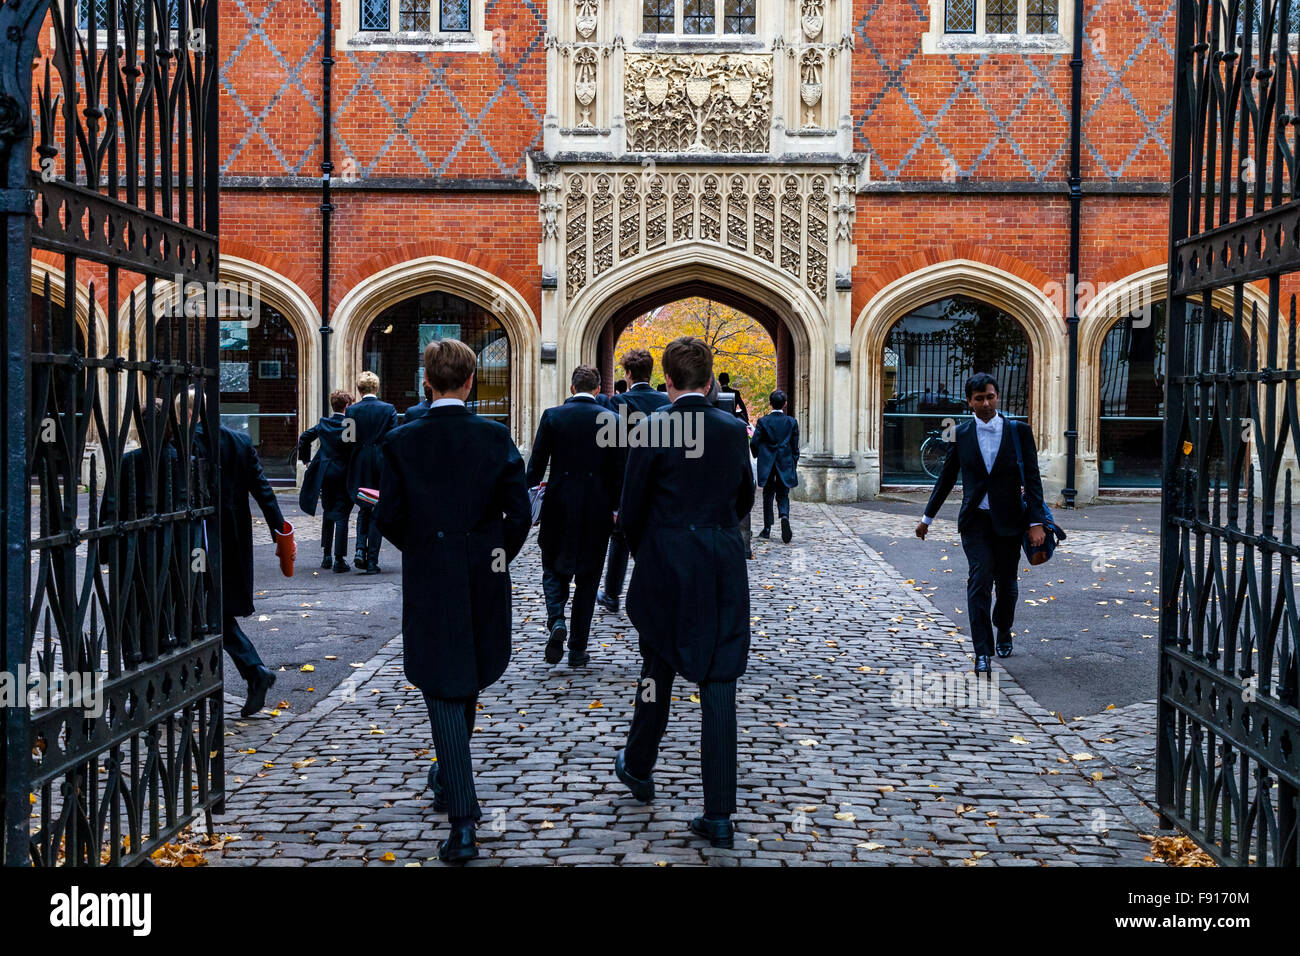 Eton Schoolboys, Eton School, Eton, Berkshire, UK Stock Photo